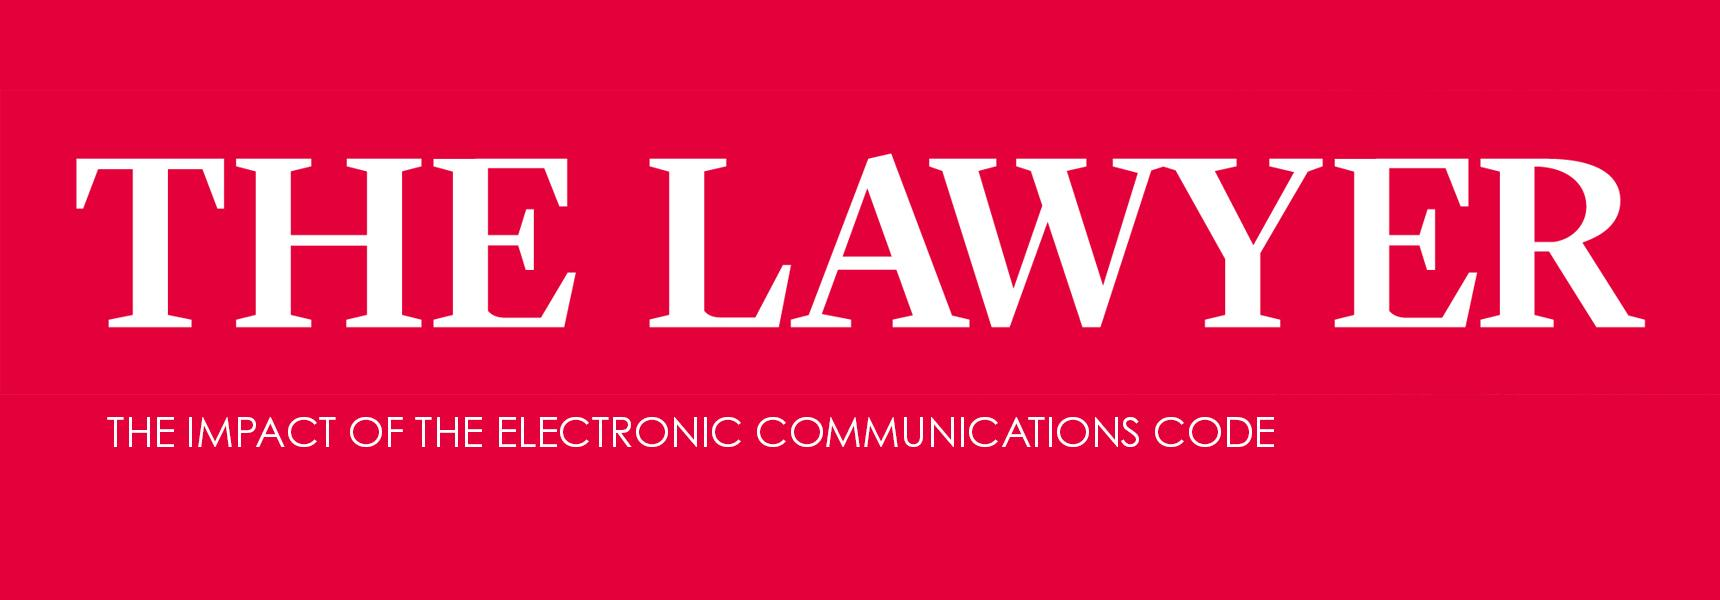 Carlos Pierce discusses the impact of the Electronic Communications Code